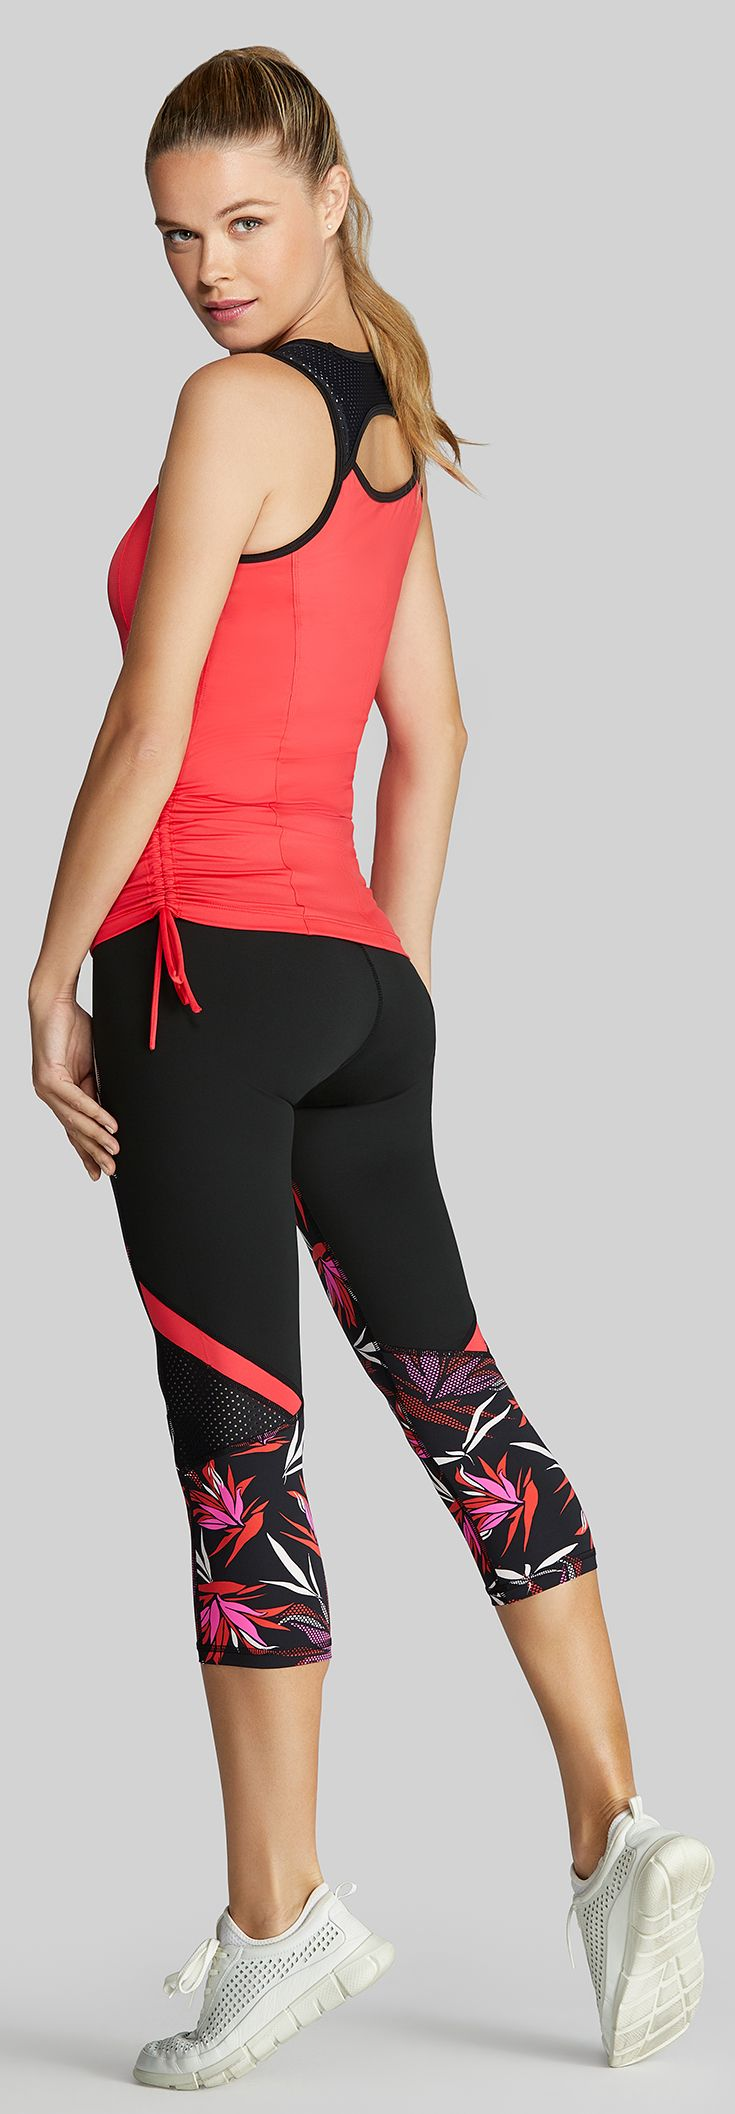 Check out the newest women's tennis fashion apparel line from Tail at MidwestSports.com. The Tail Paradise collection includes performance tennis skirts, tanks, and tennis outfits in flamenco red, black, and paradise print fabrics perfect for your tennis season.